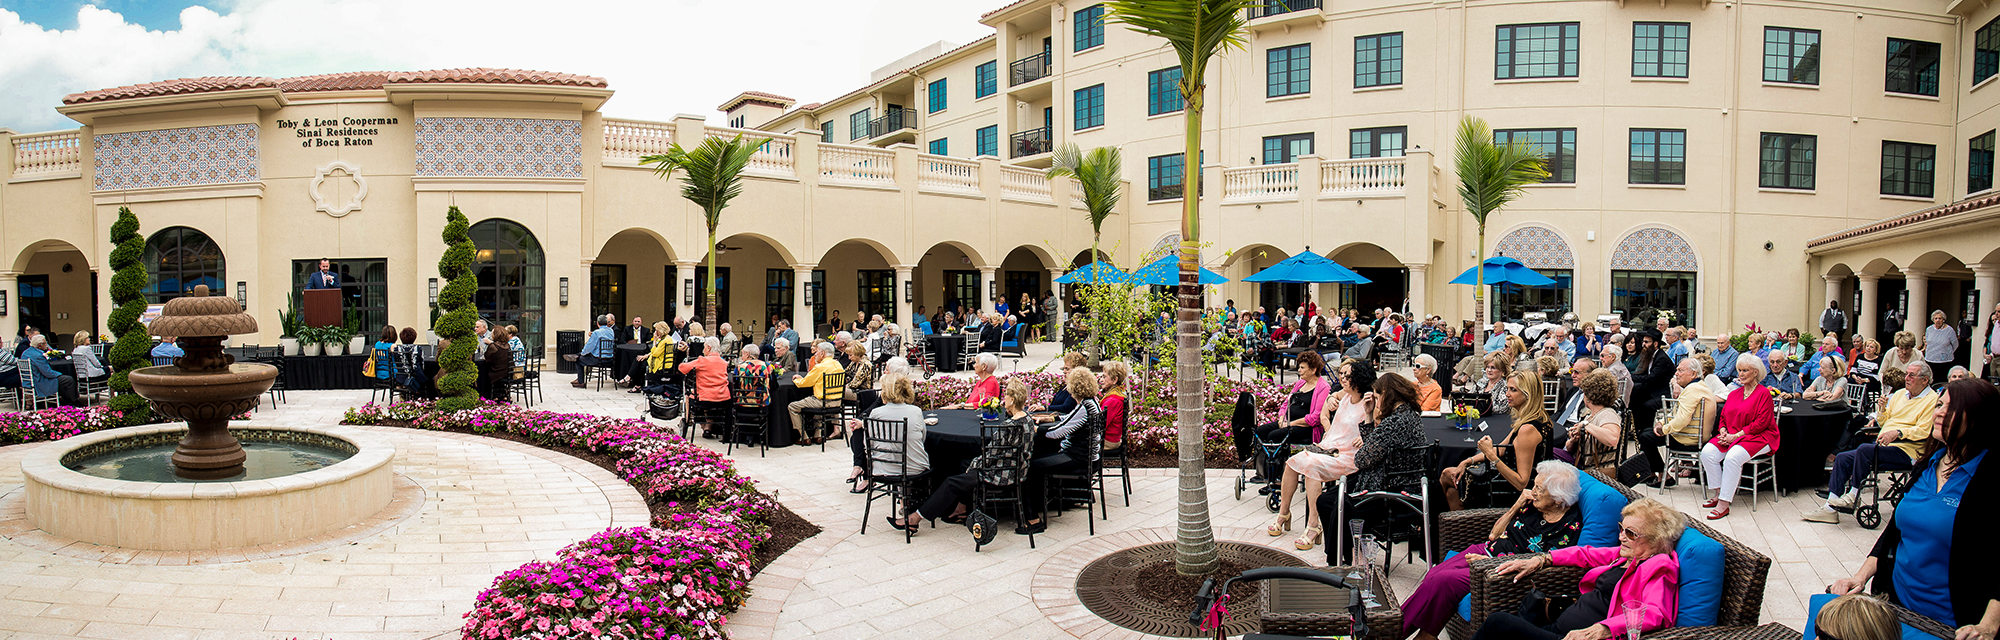 About Sinai Residences of Boca Raton